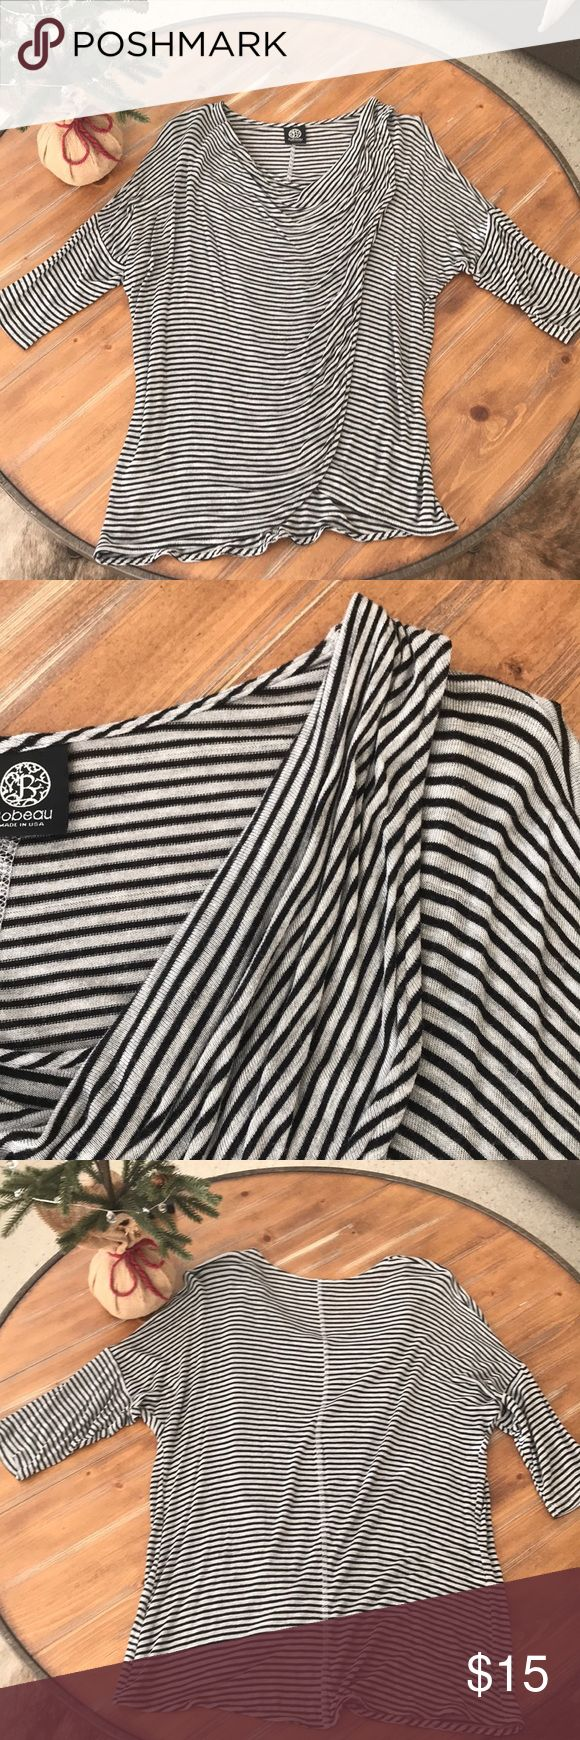 Saks off 5th stripe tunic top Soft gray/black striped 3/4 sleeve tunic top. Front is draped and gathered at the shoulder. Great with leggings or skinny jeans! Great condition! bobeau Tops Tunics